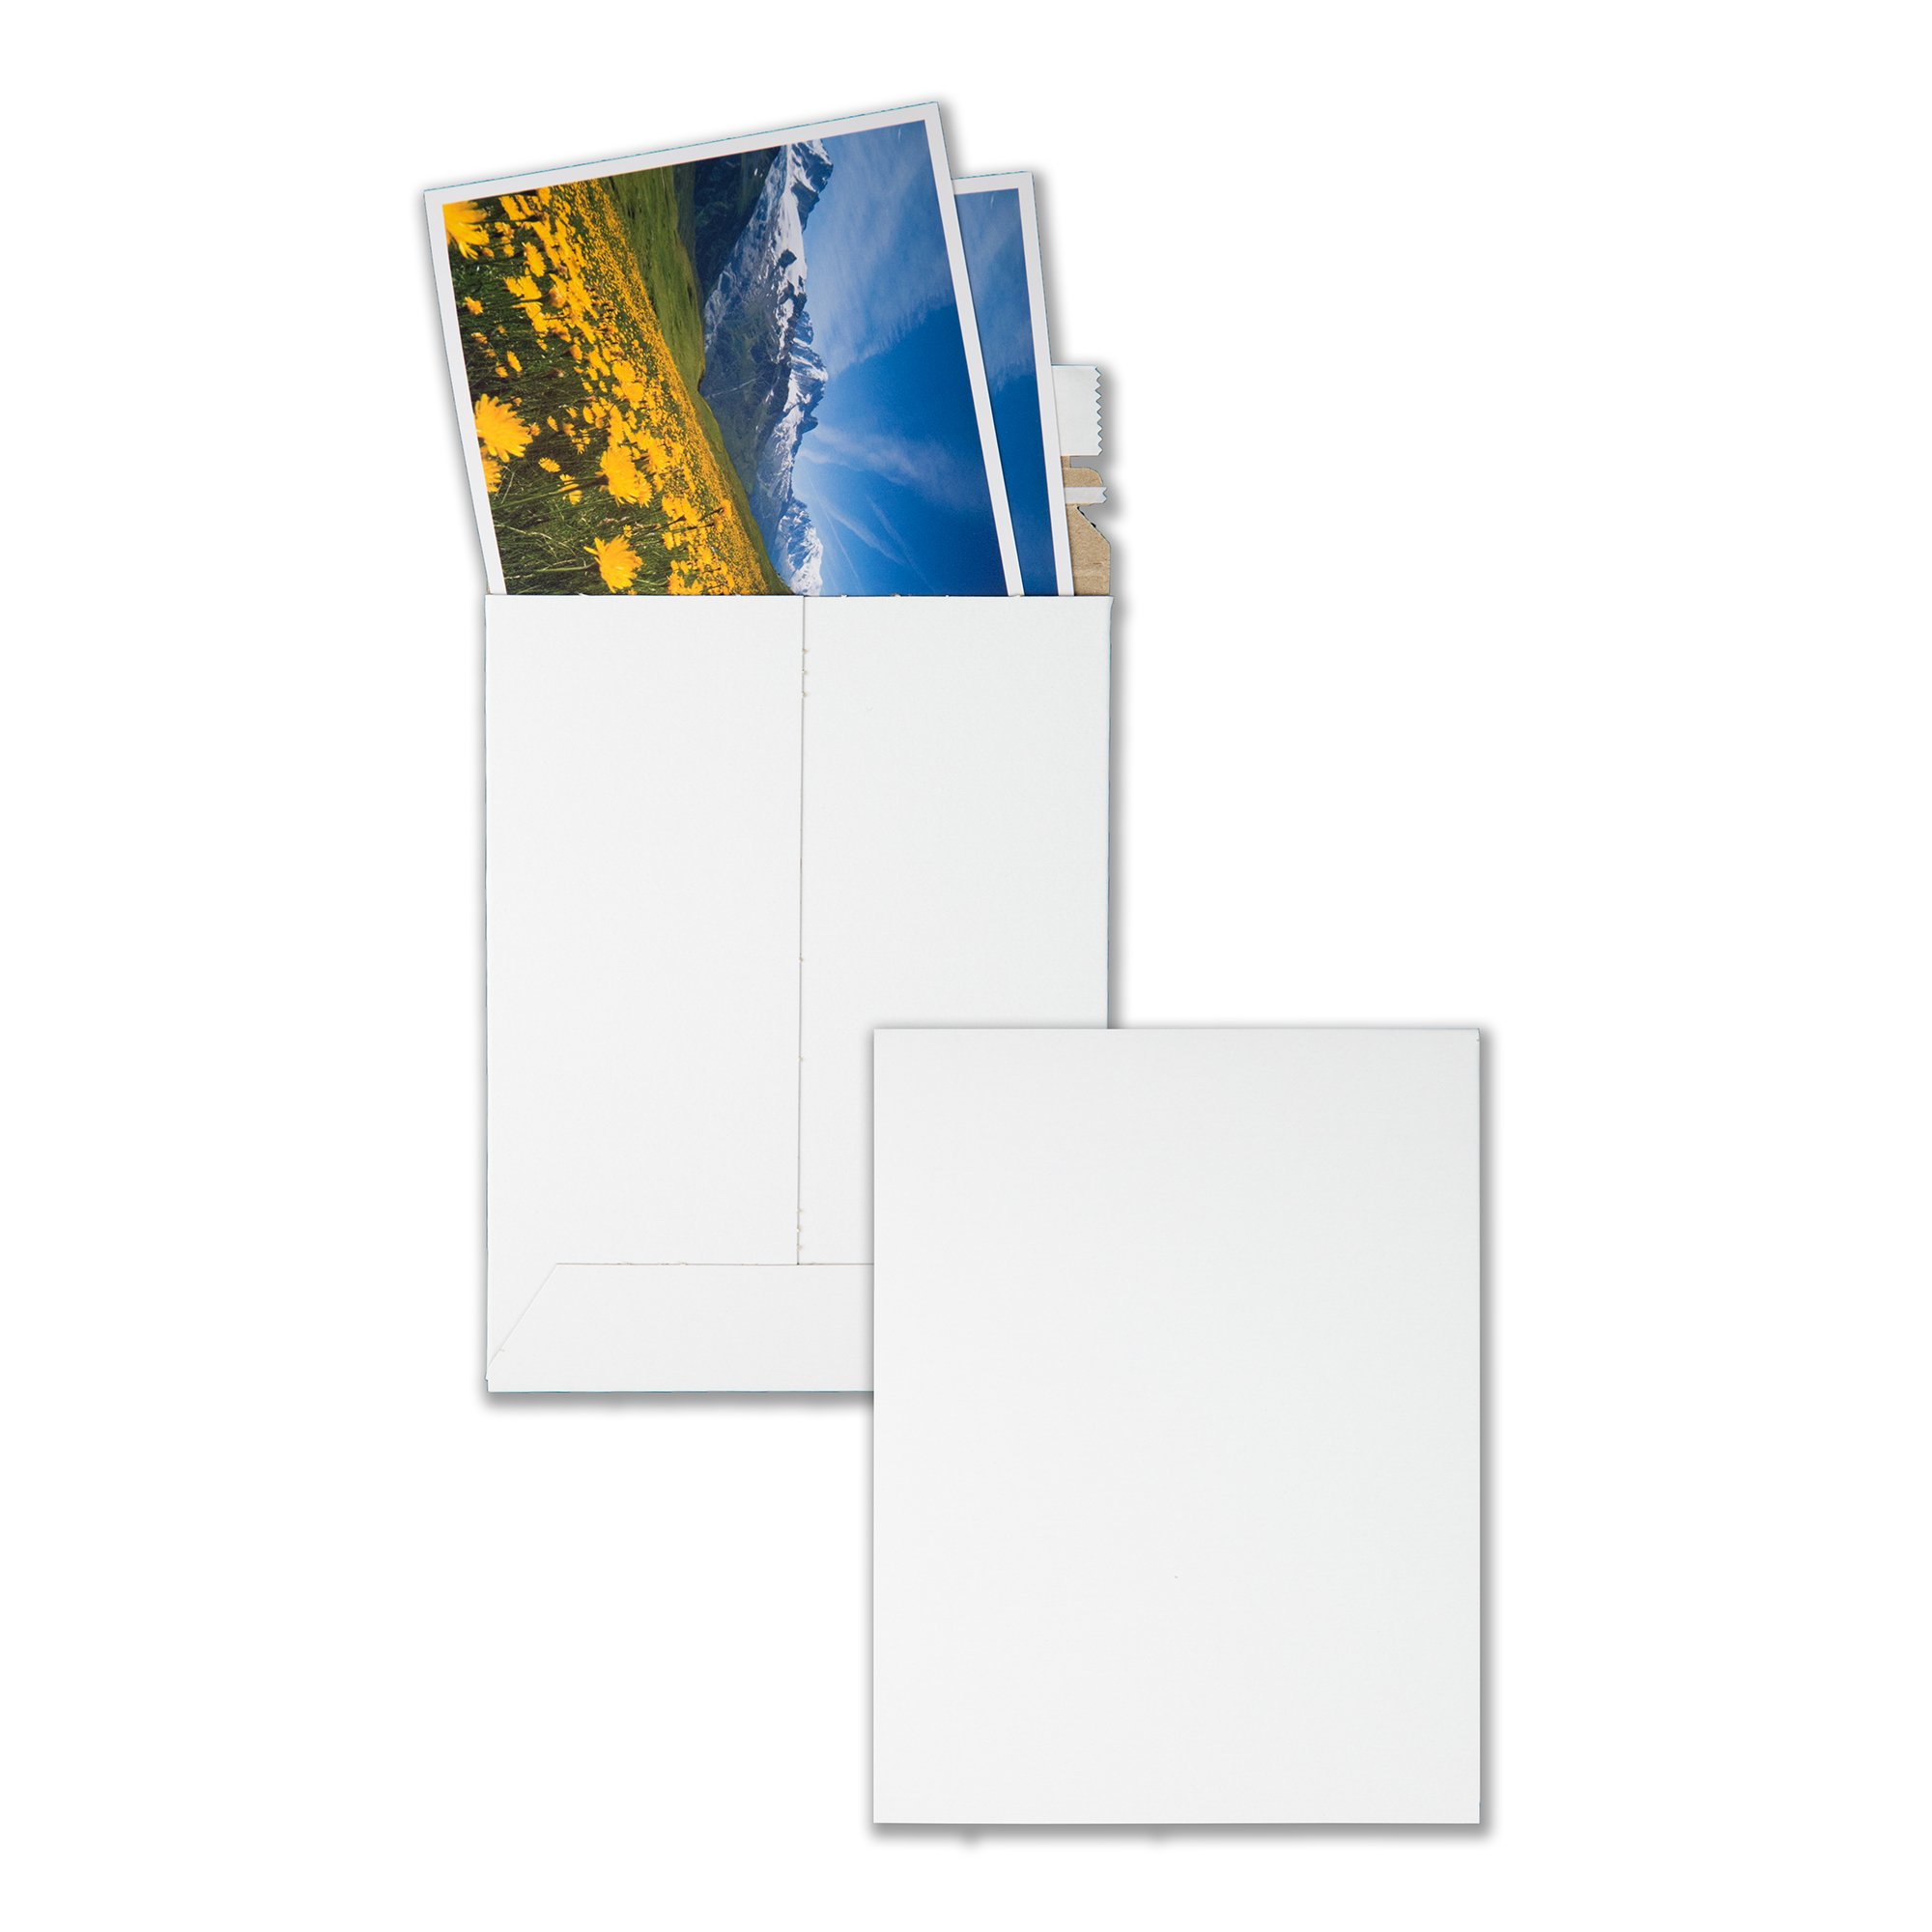 Quality Park Extra-Rigid Fiberboard Photo/Document Mailers, 6 x 8 Inches, Box of 25 (64007)